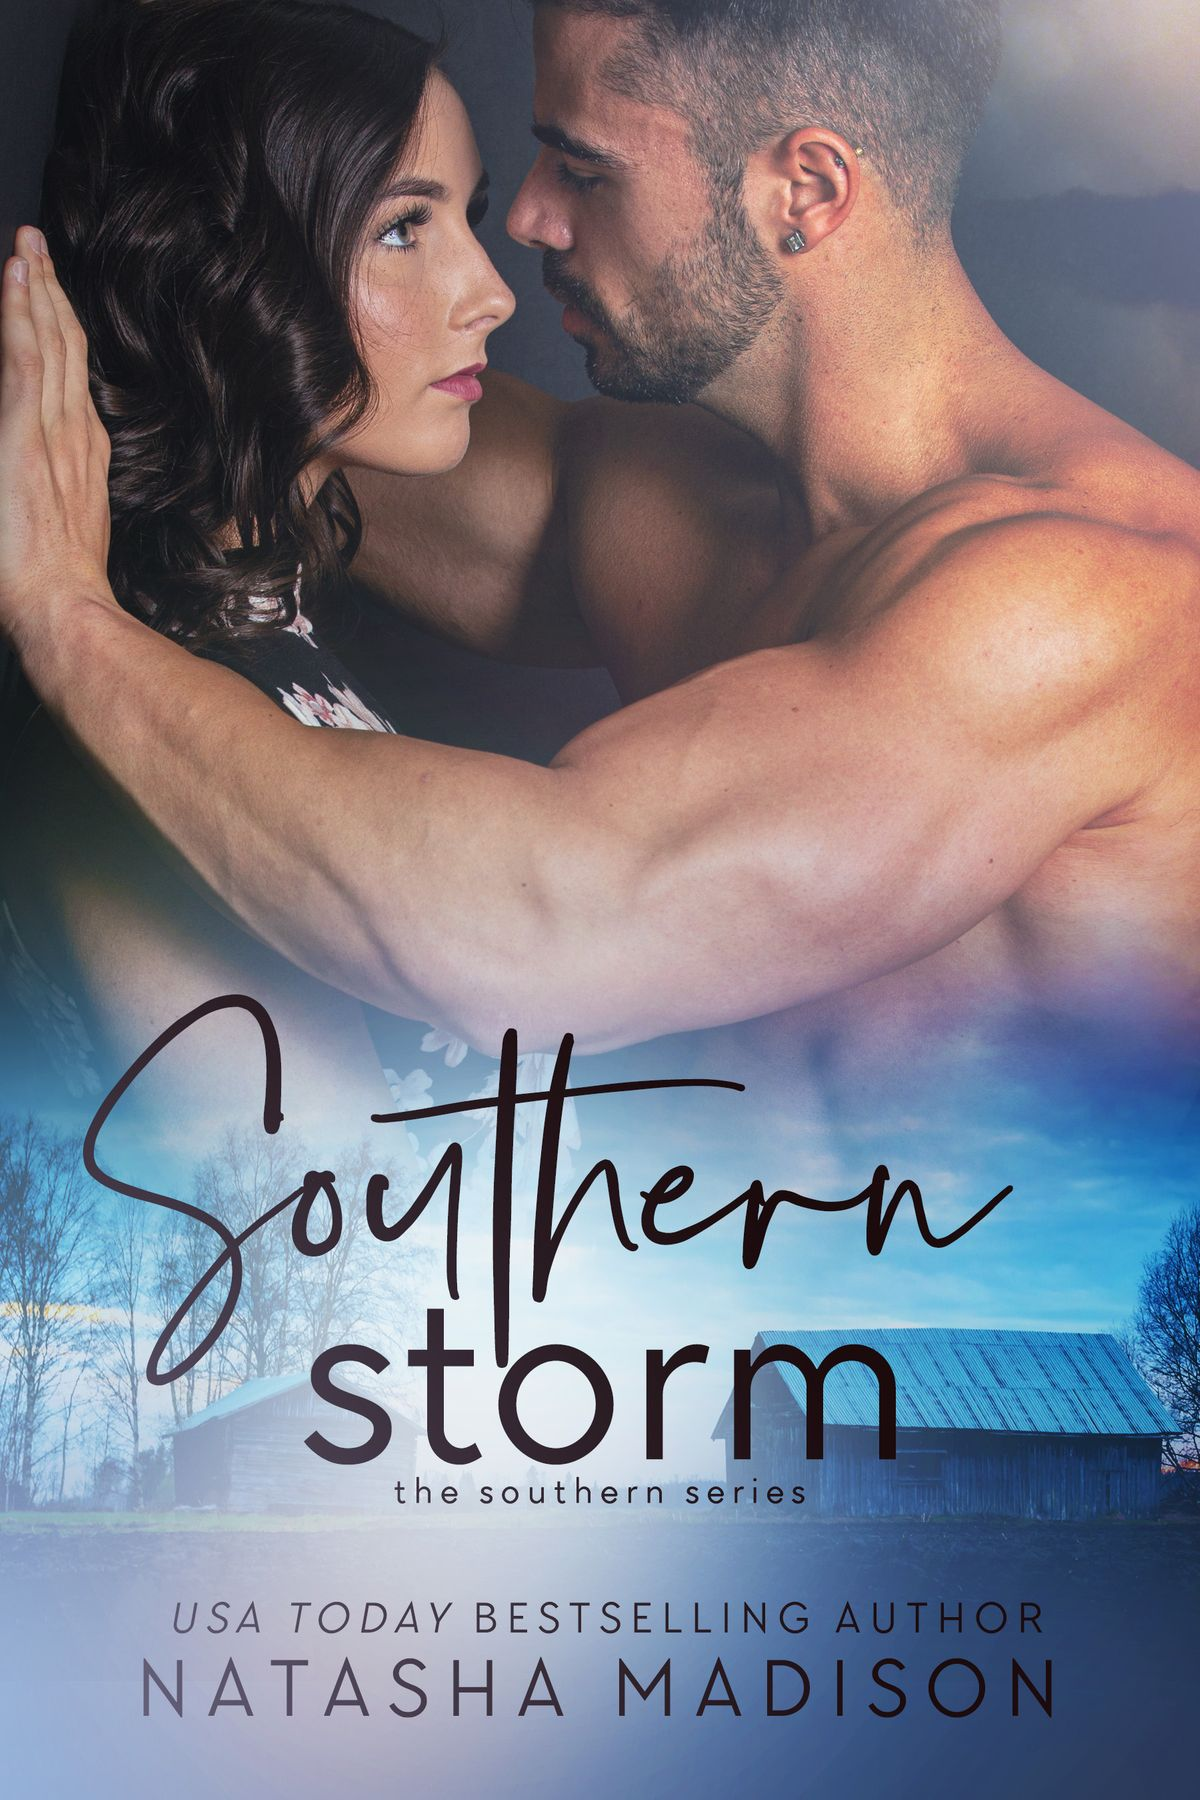 Southern Storm by Natasha Madison